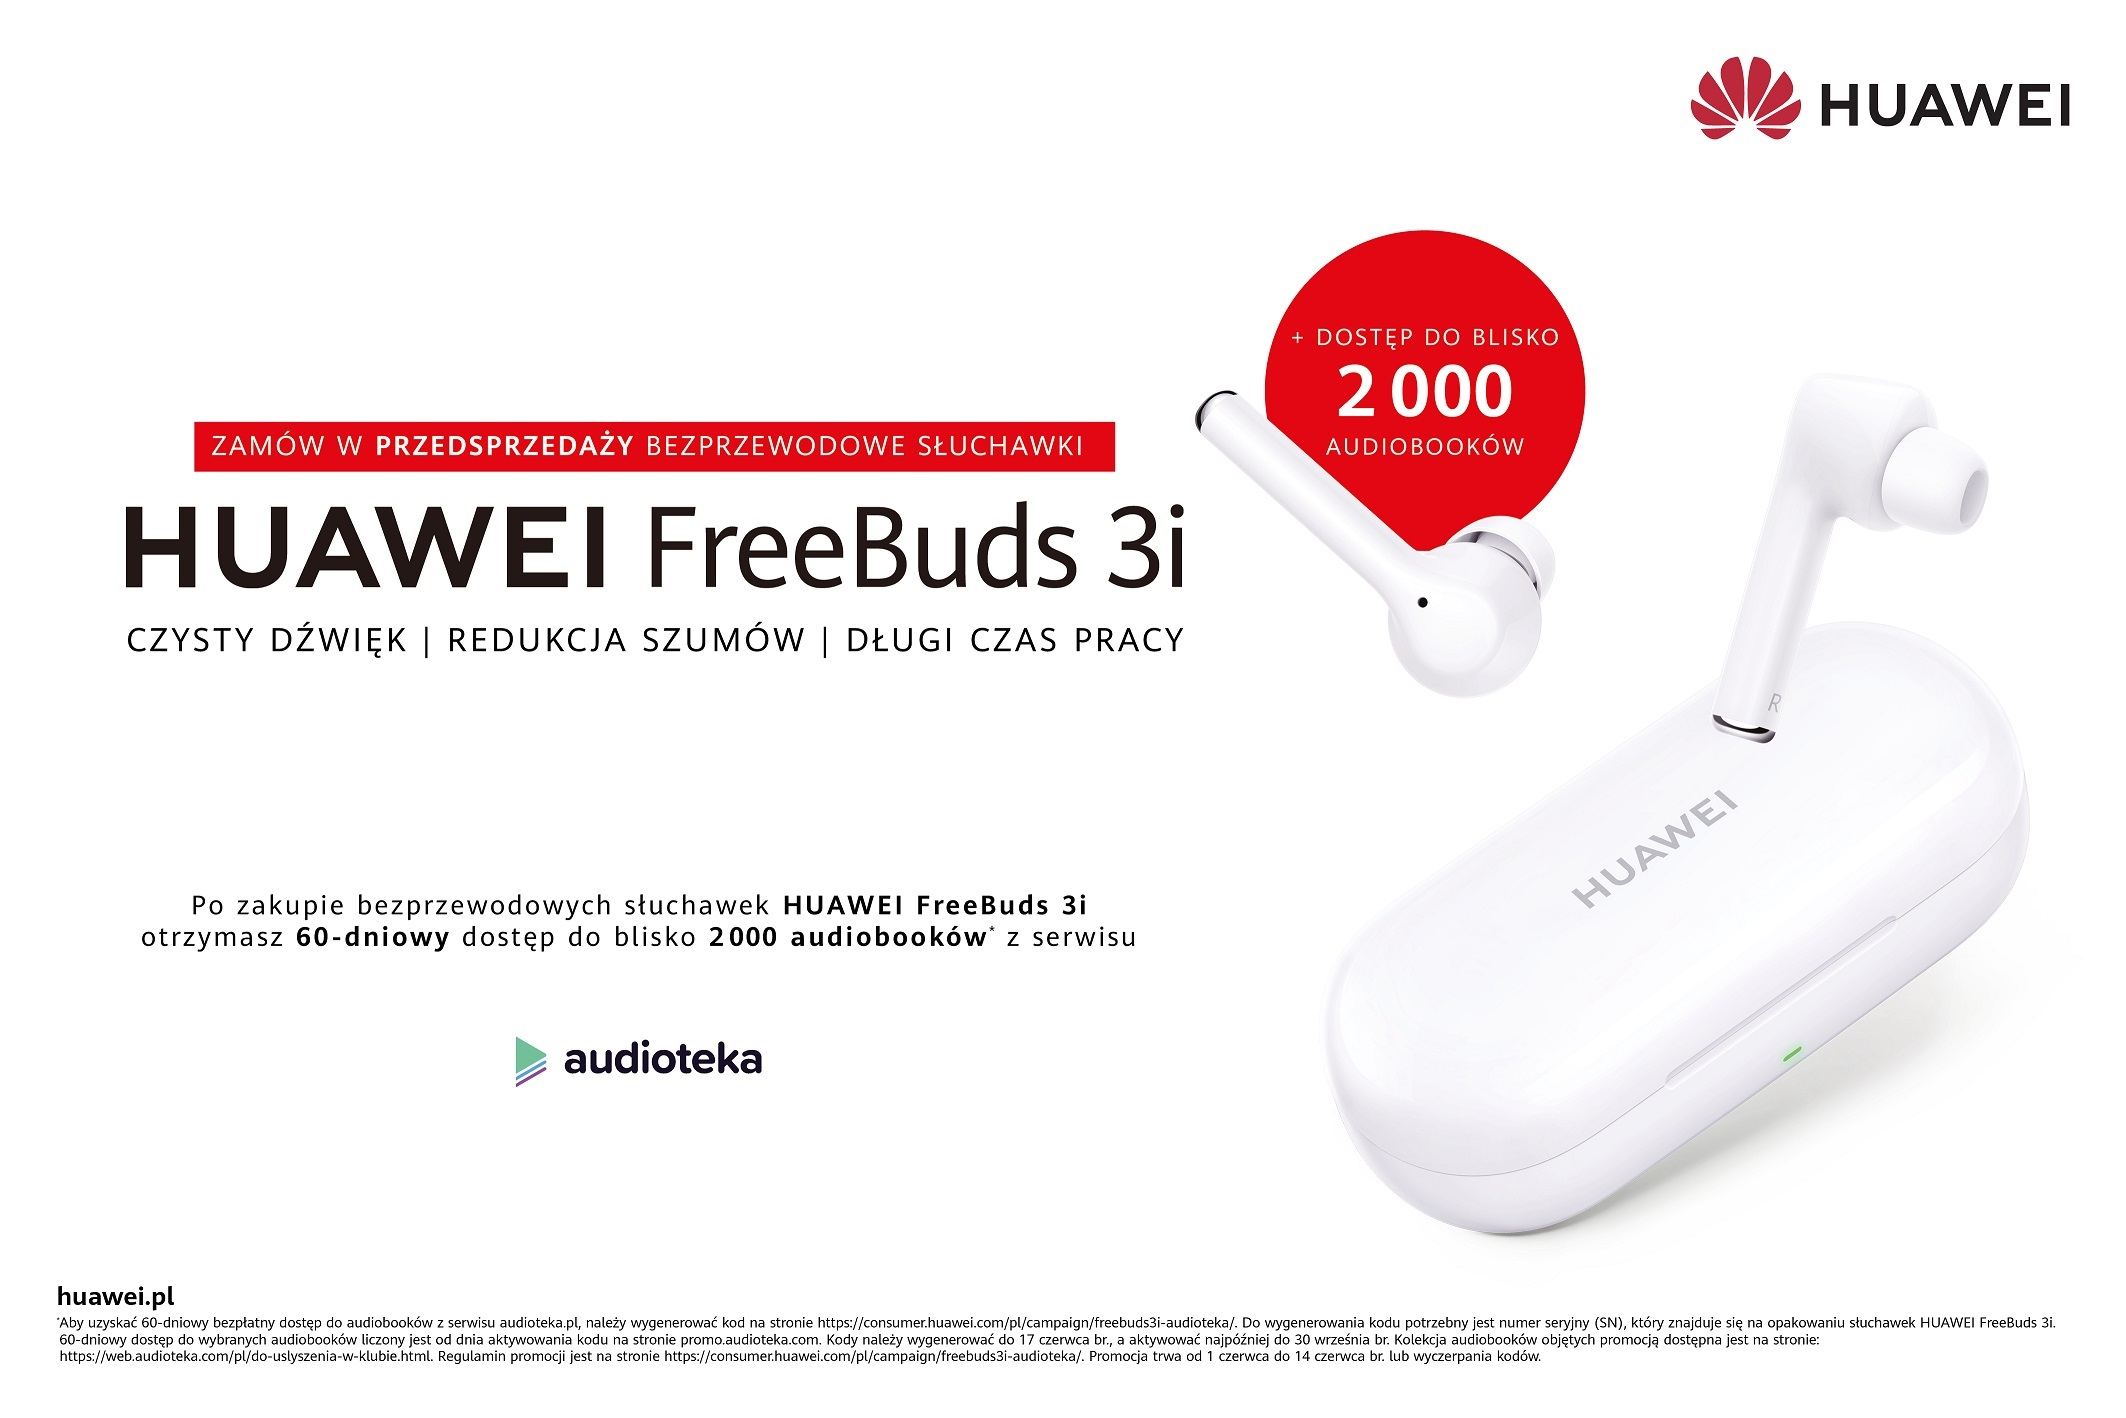 Huawei FreeBuds 3i TWS earbuds pre-order